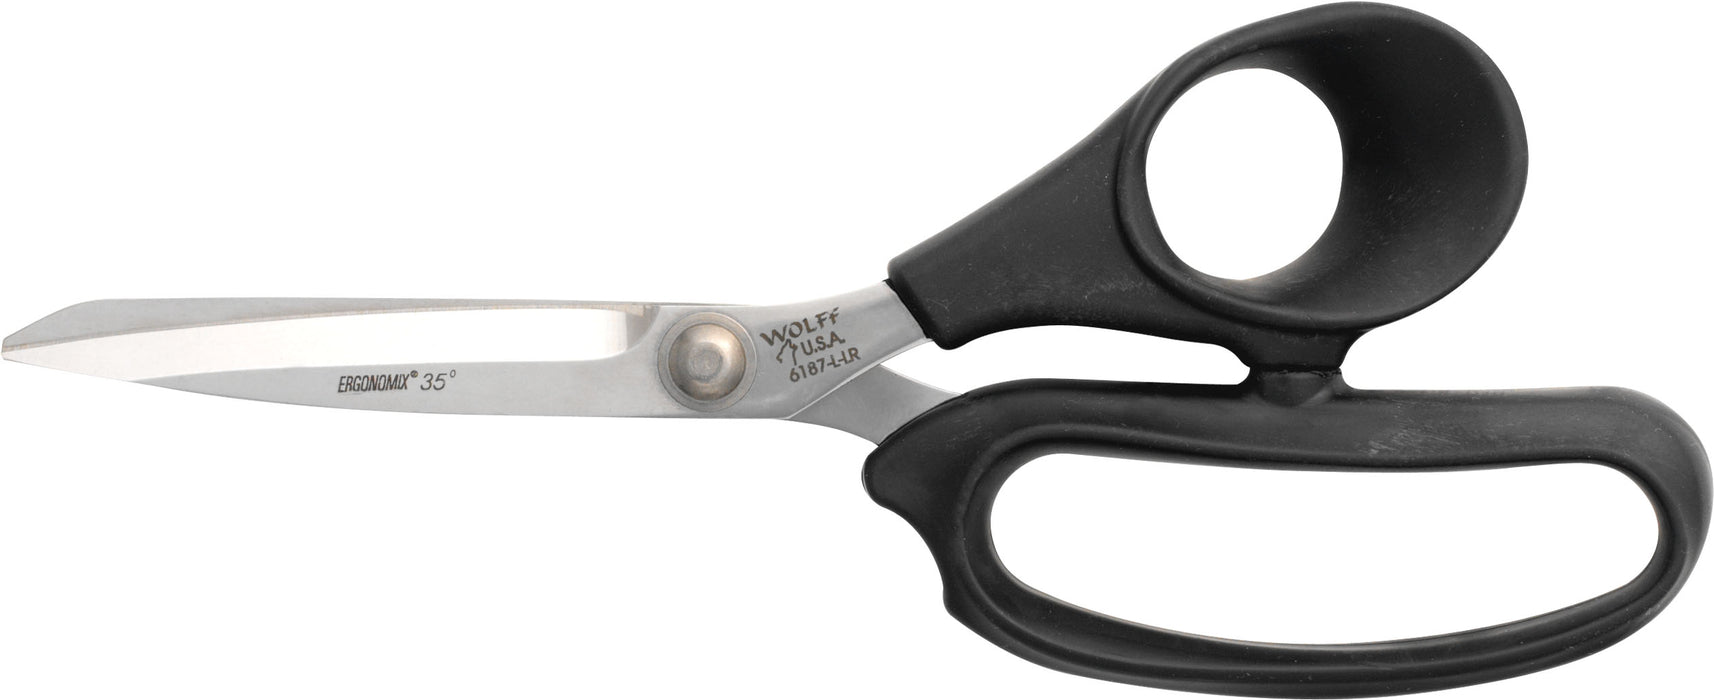 "Wolff® 6187-L-LR 9"" Ergonomix® Poultry Scissors - 6000 Series Stainless Steel Shears"